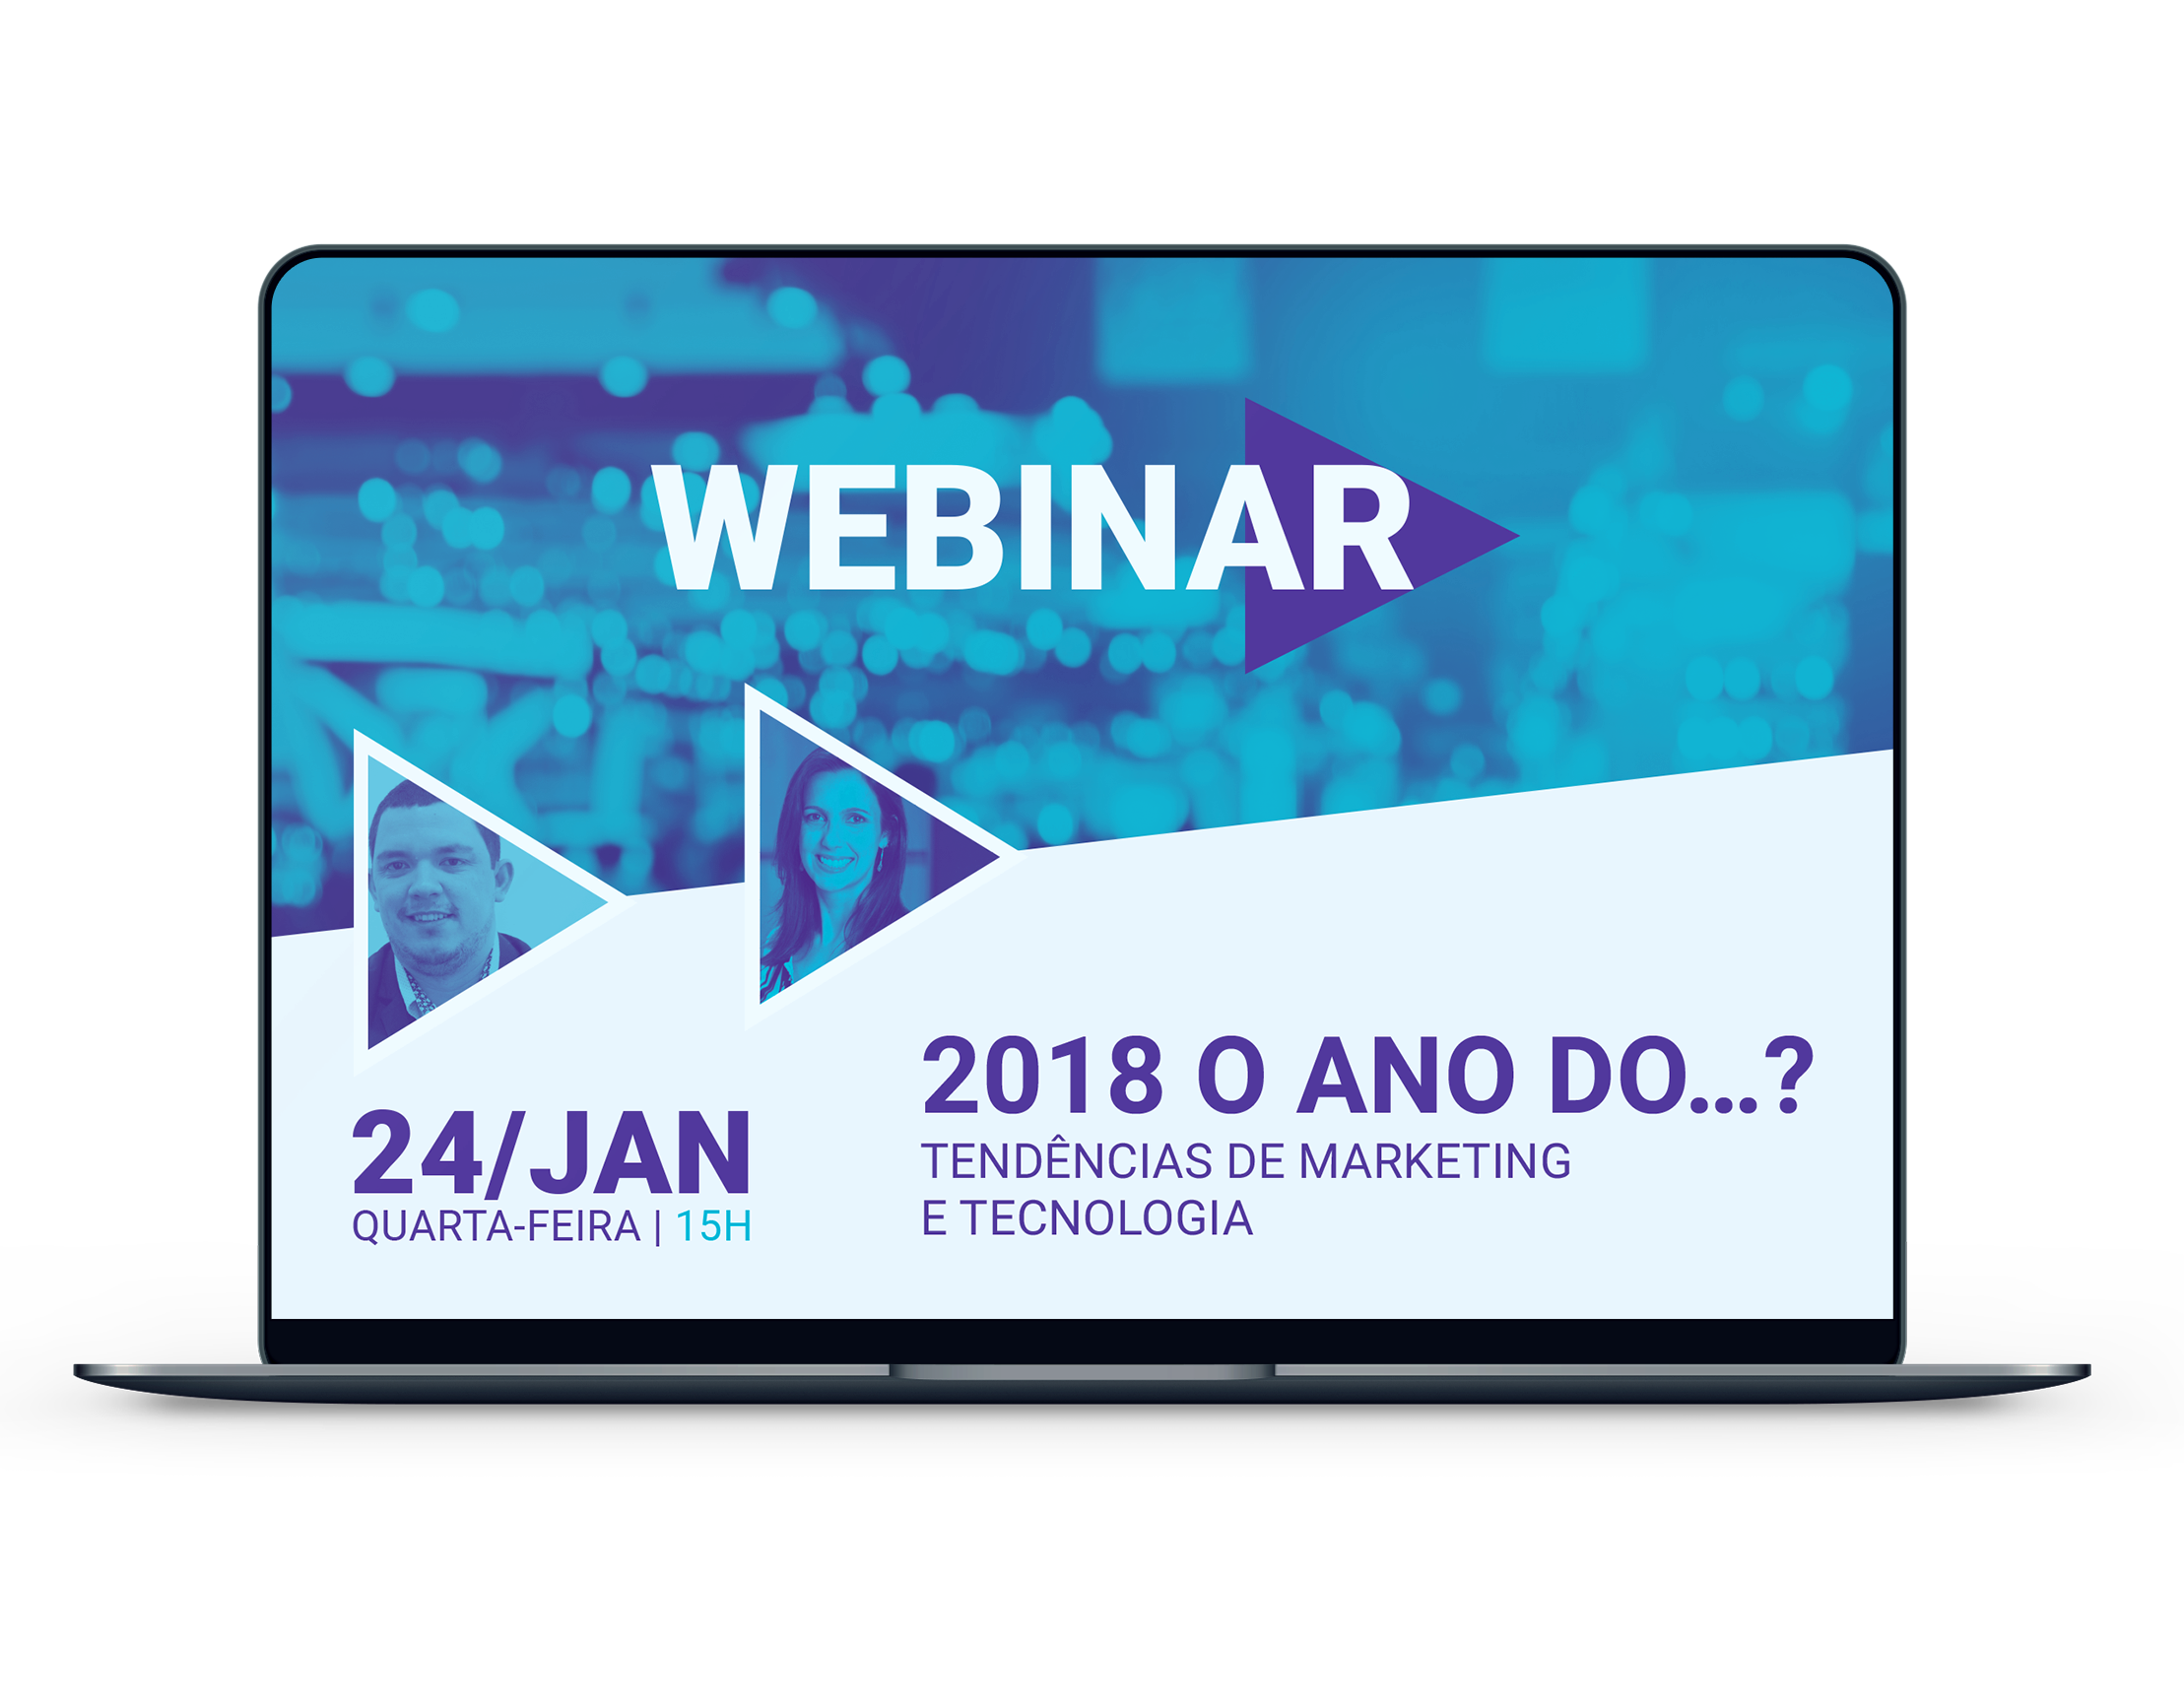 webinar tendencias de marketing para 2018